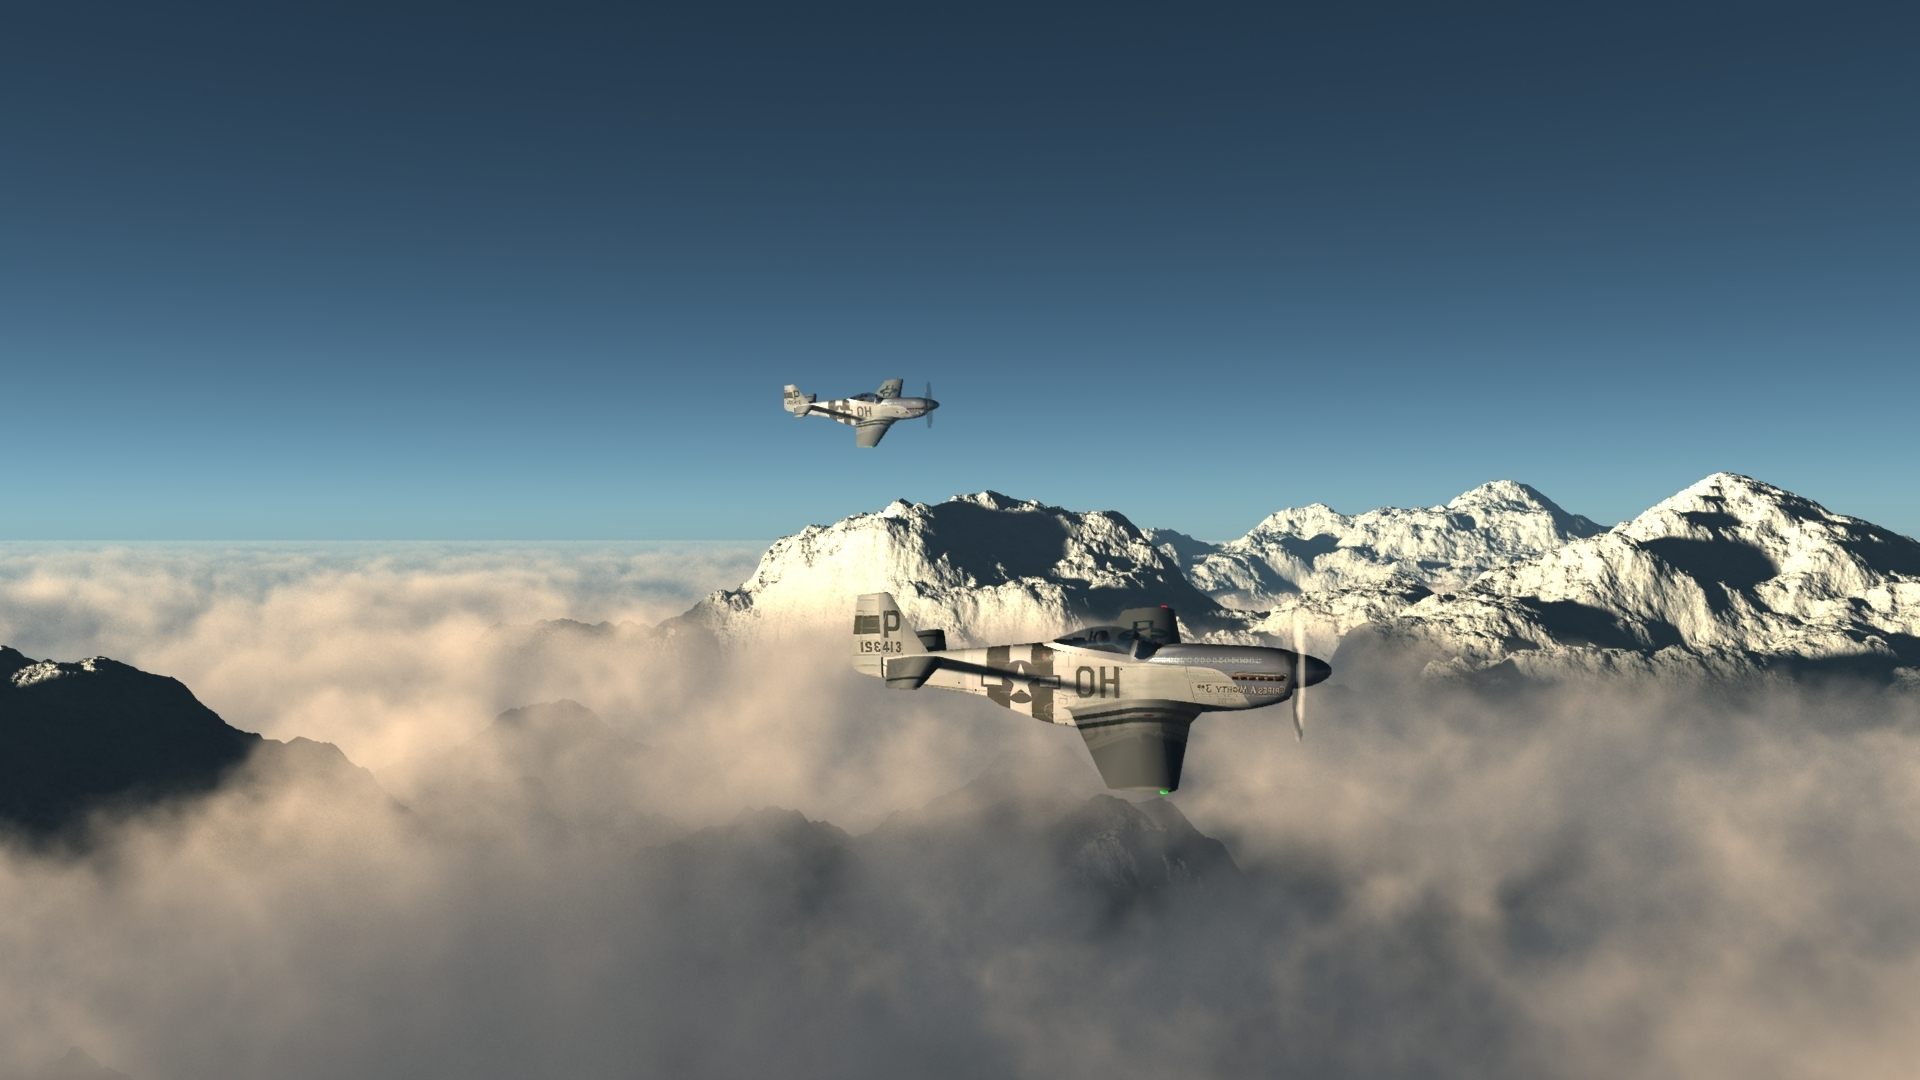 Aviation Background